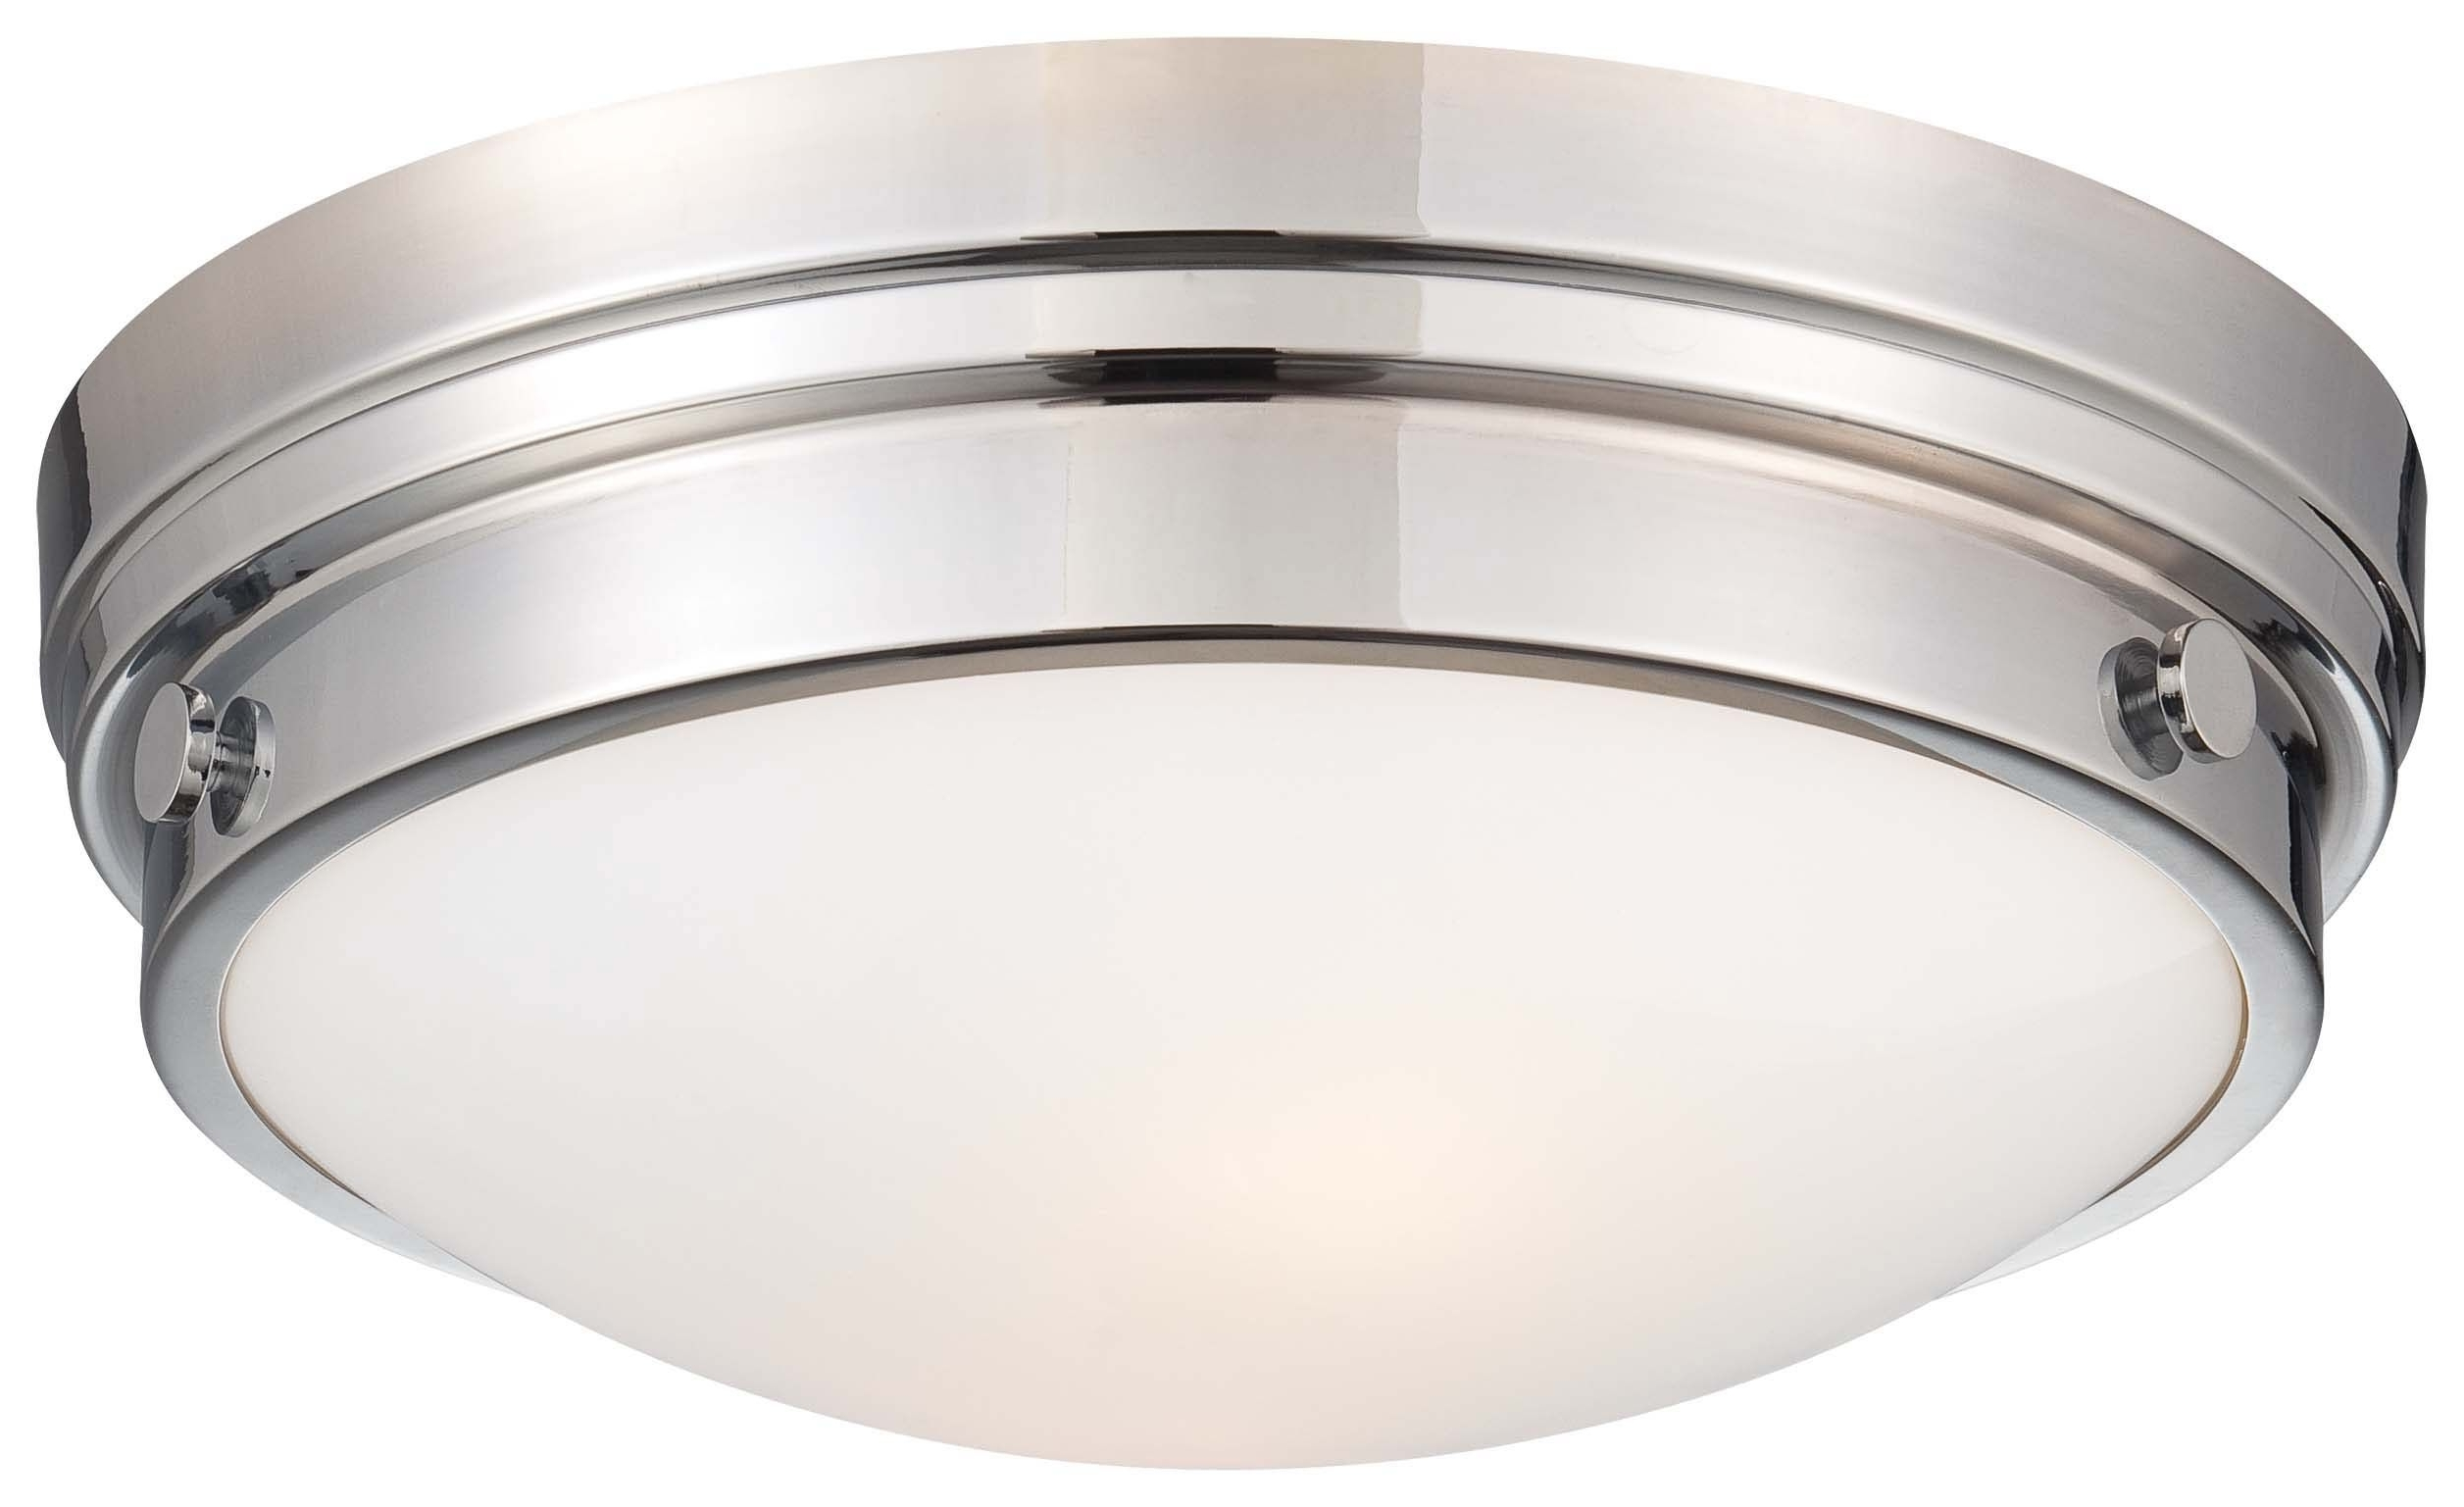 Outdoor Fluorescent Ceiling Lights Inside Most Recent Light : Best Kitchen Light Fixtures Dining Room Lighting For (View 8 of 20)